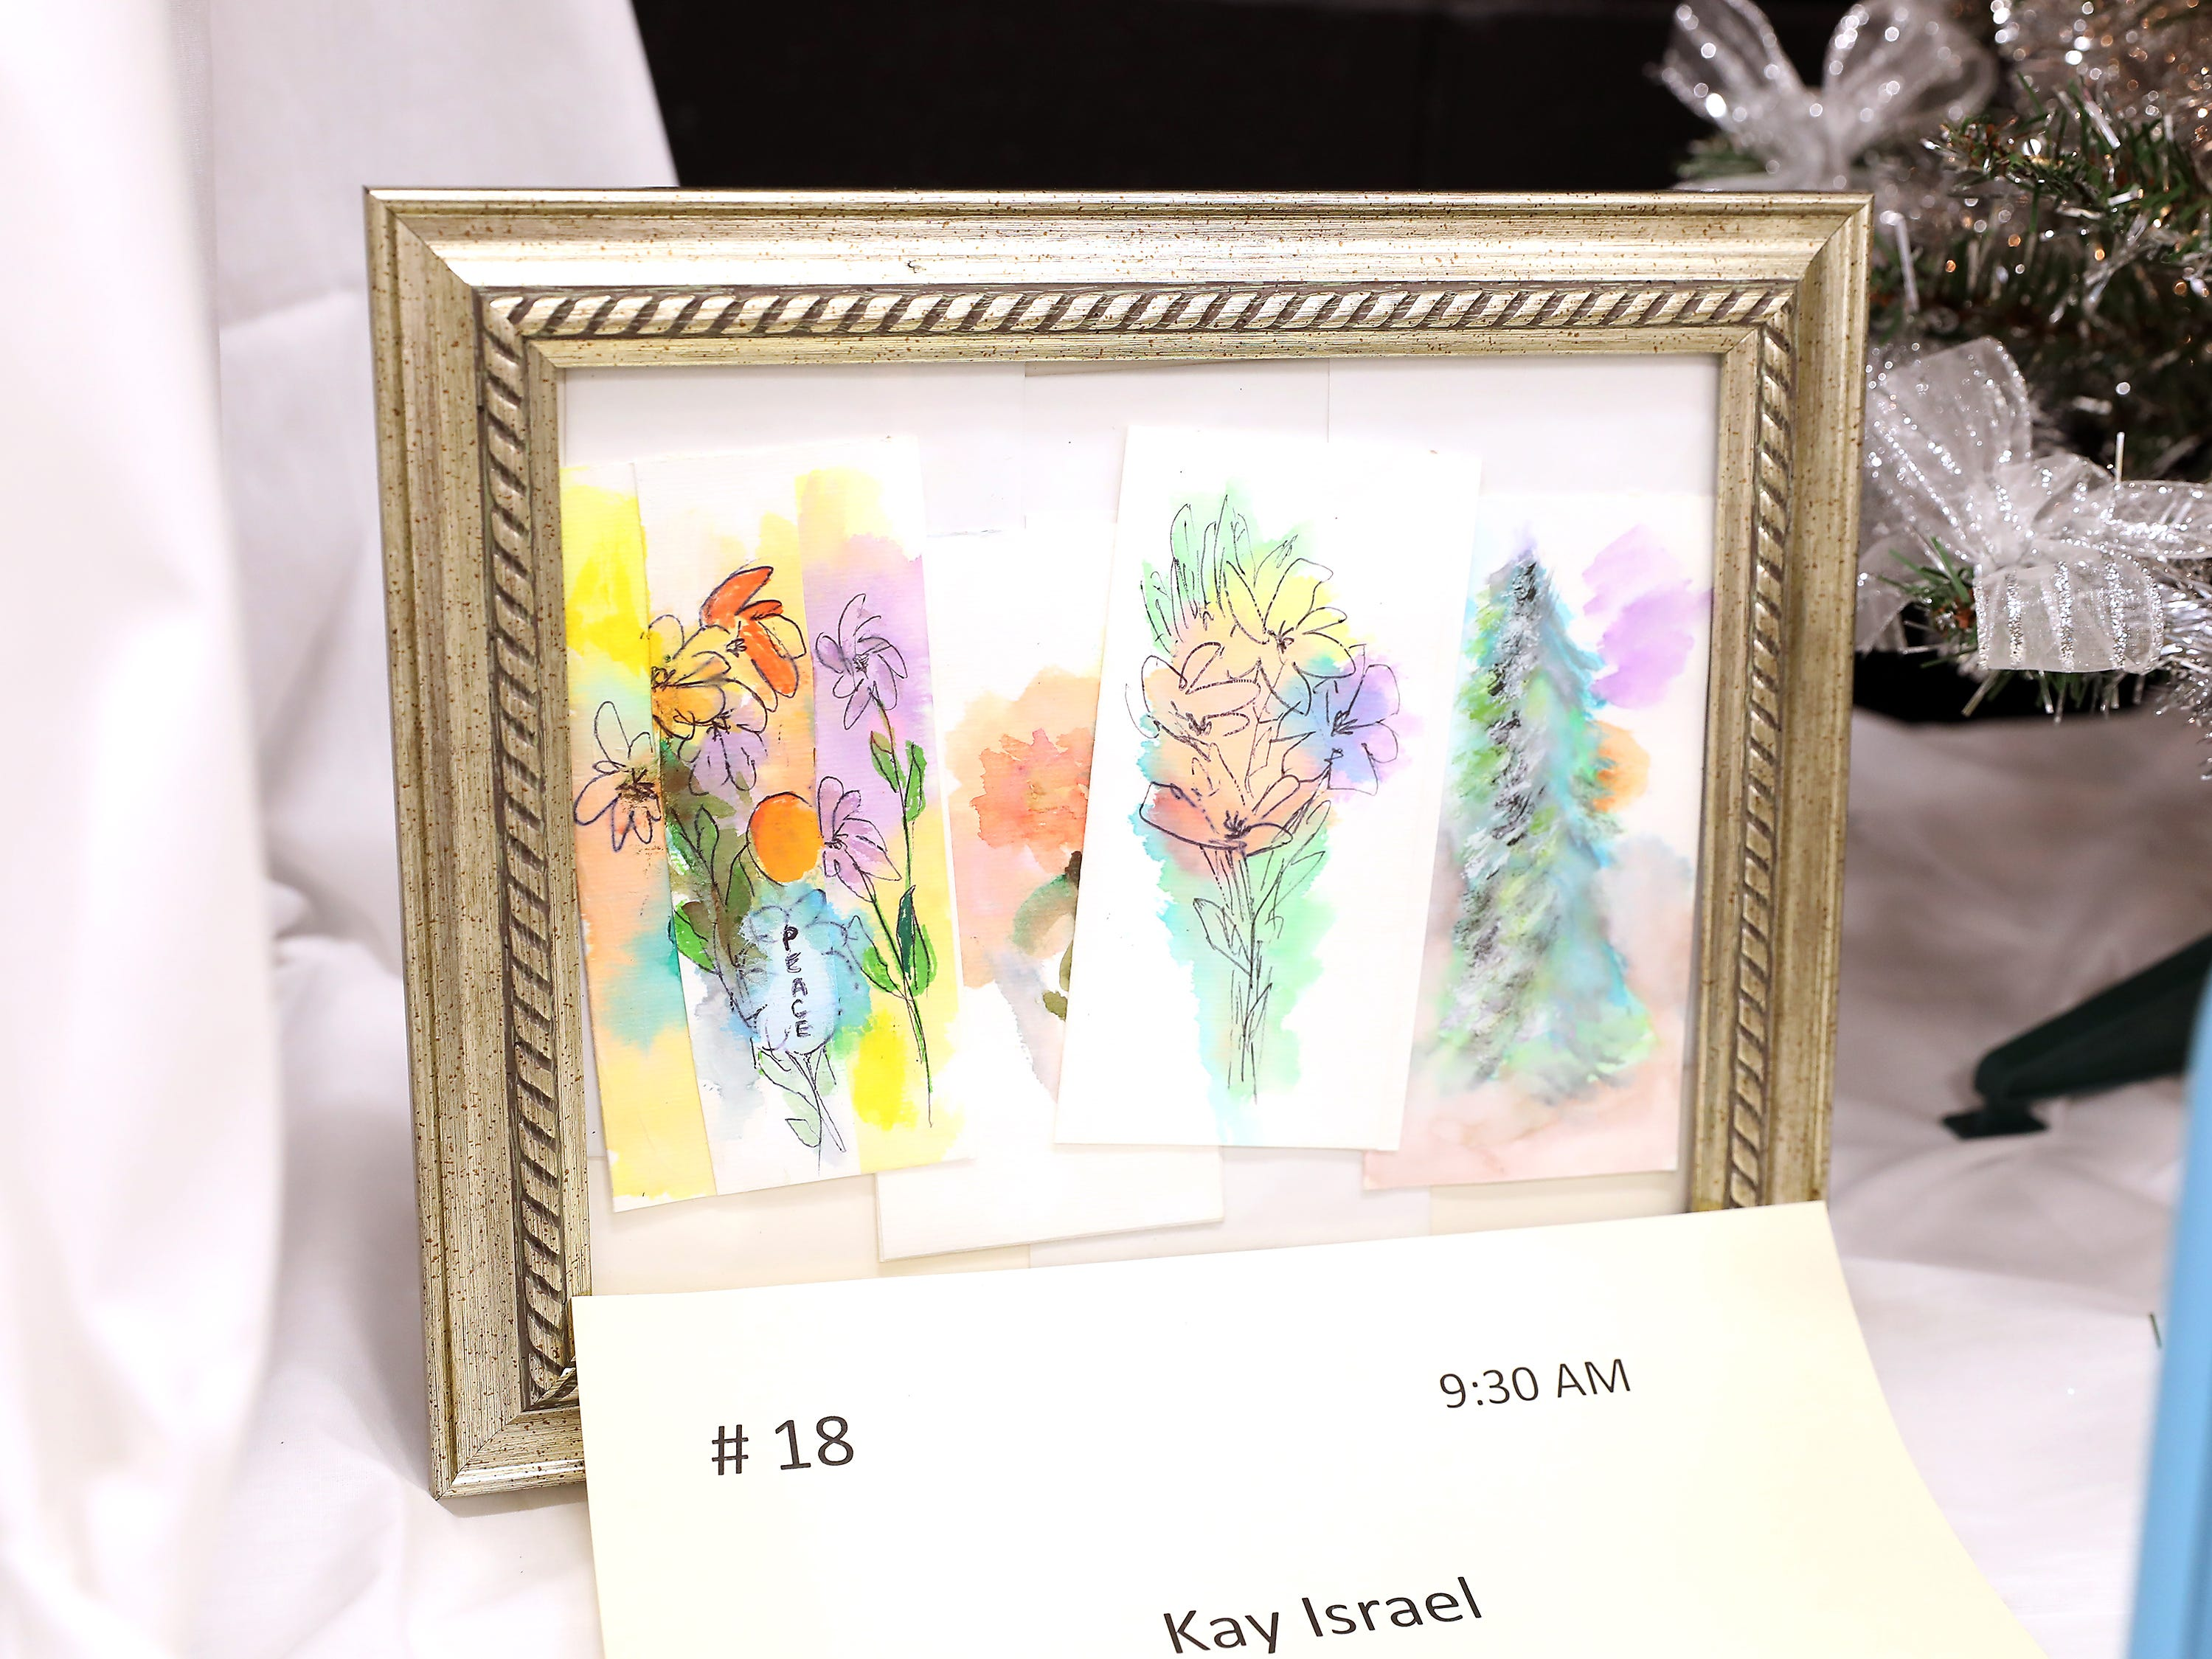 "18	9:30 AM	Kay Israel	Other	Original Watercolor Painting	Four notecards with original watercolor painting by Kay Israel.  Cards are 3""x6"" in size, three with floral designs and one with an evergreen tree.  Cards painted in 2018		$50 gift card to your choice of Adornetto's, Giacomo's, Old Market House Inn."